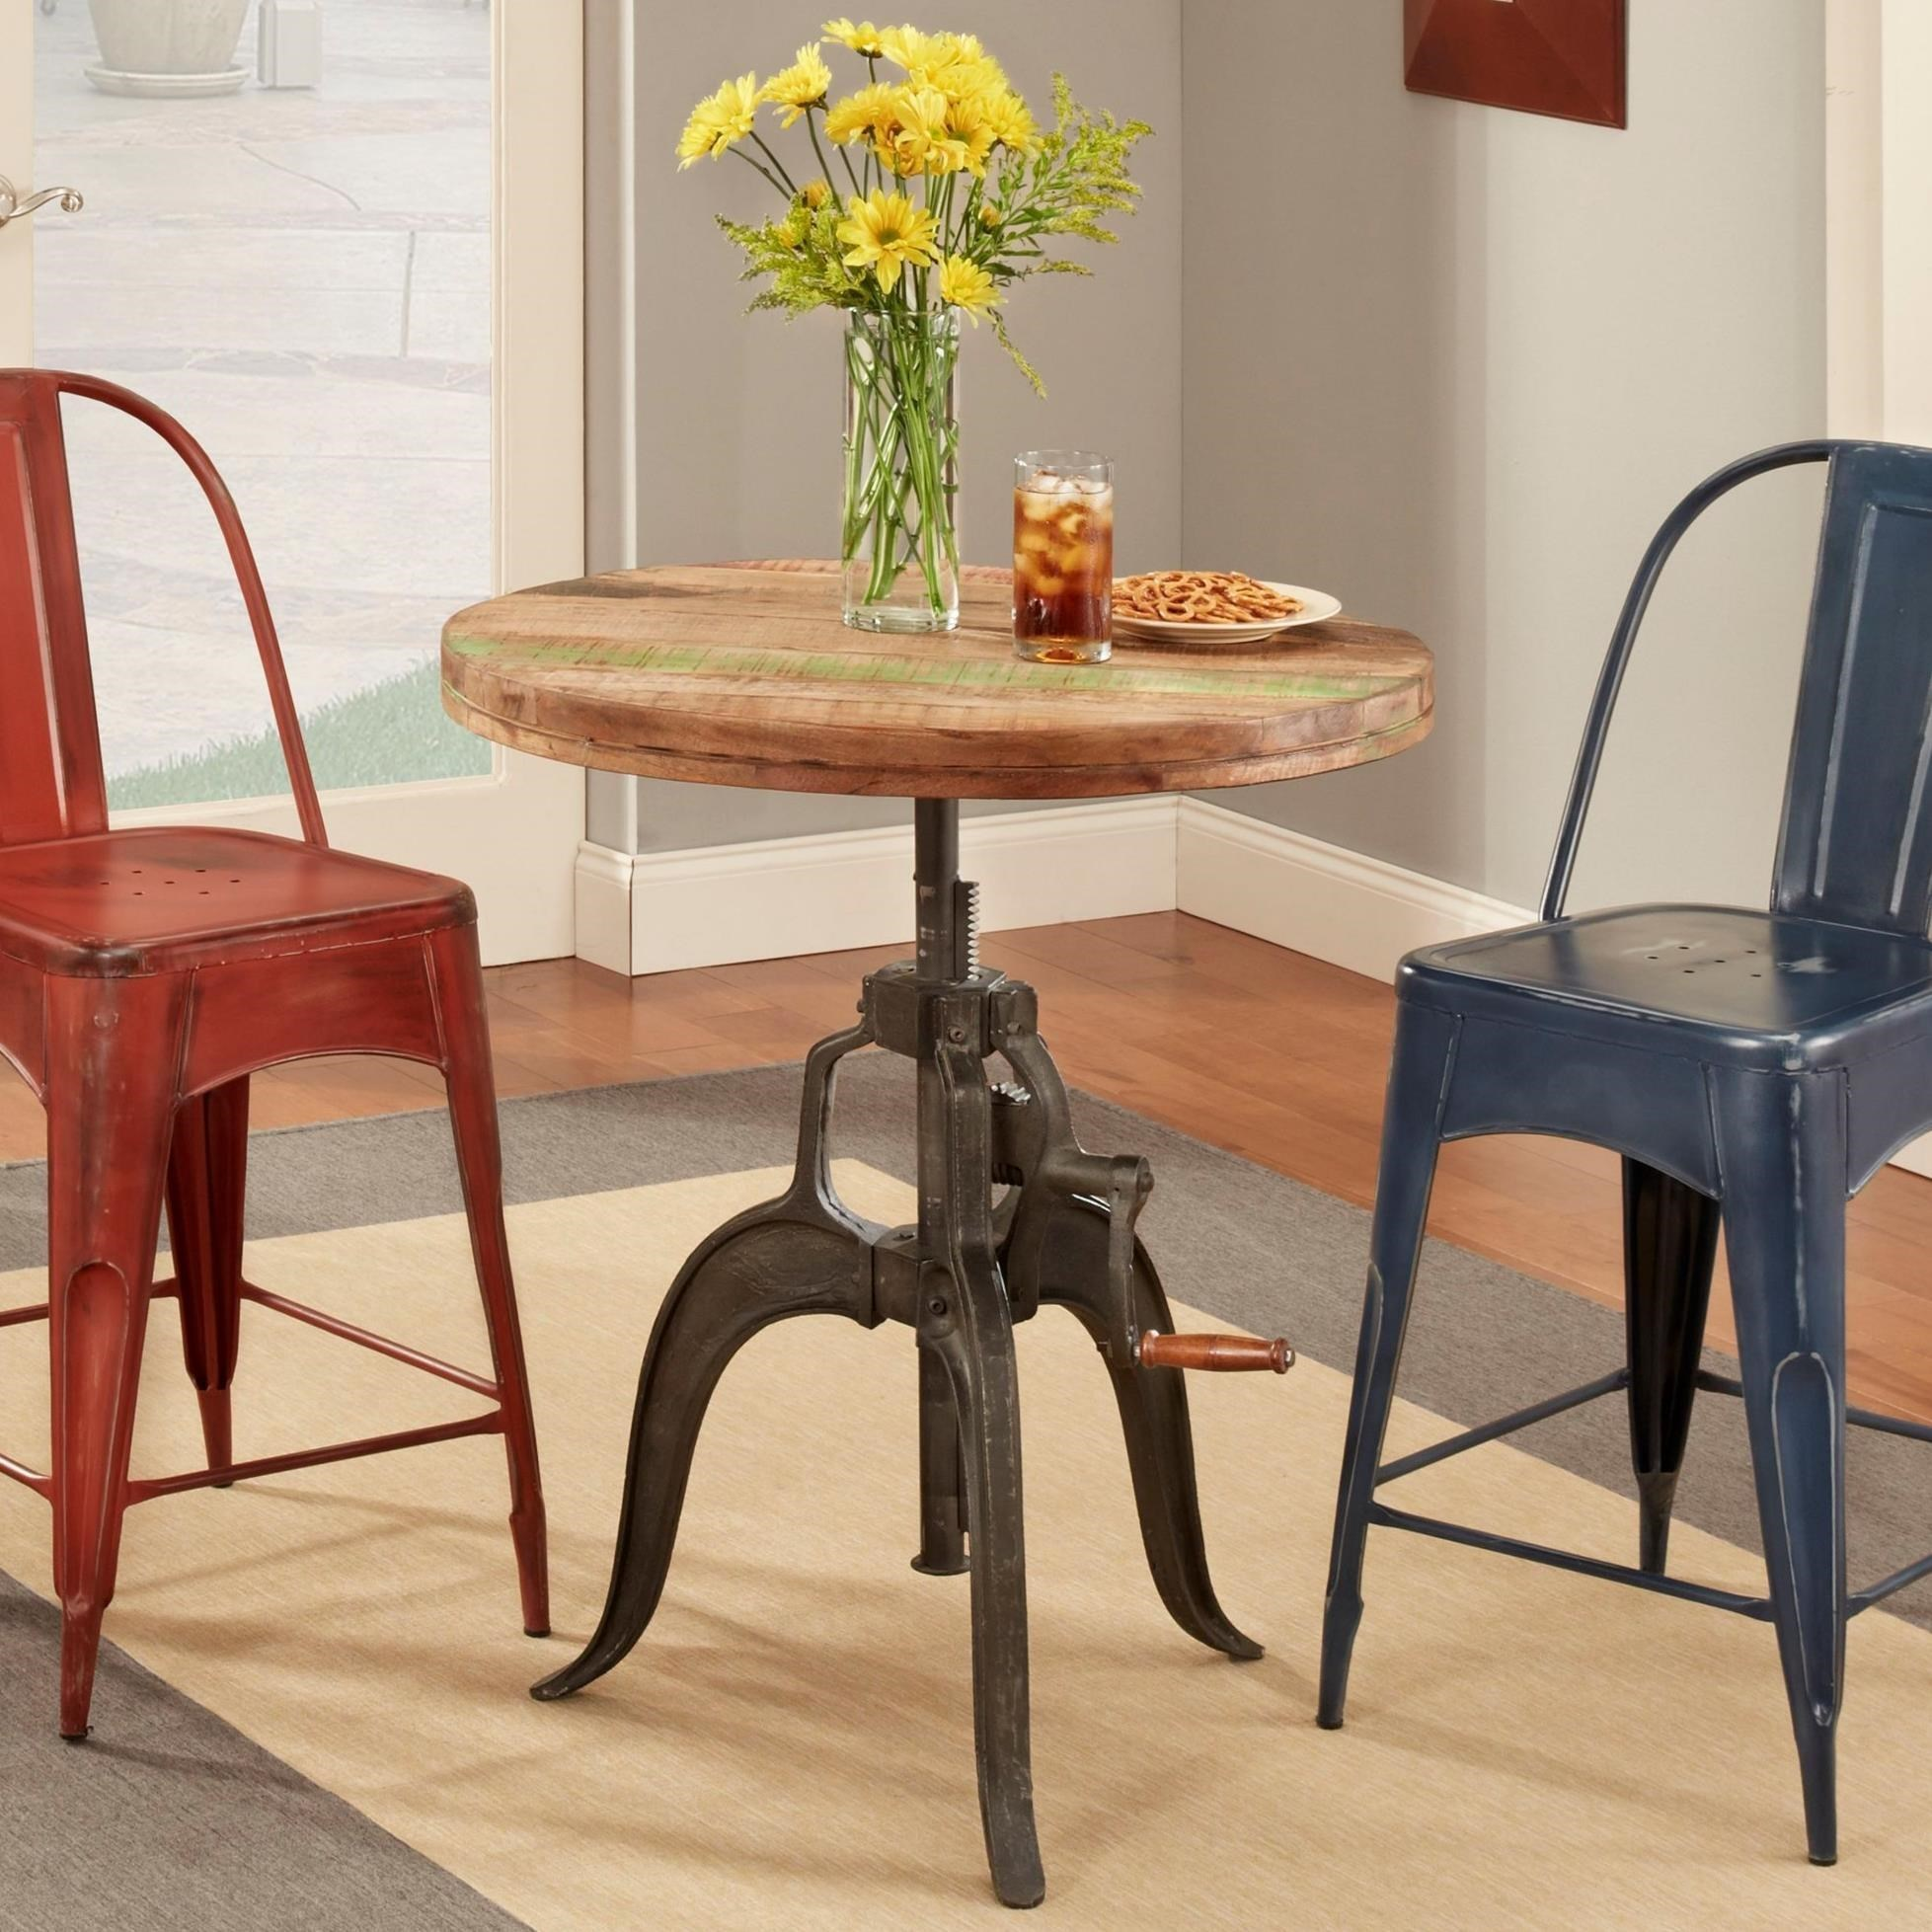 Largo Rustic CollectiblesRound Wood Adjustable Height Table ...